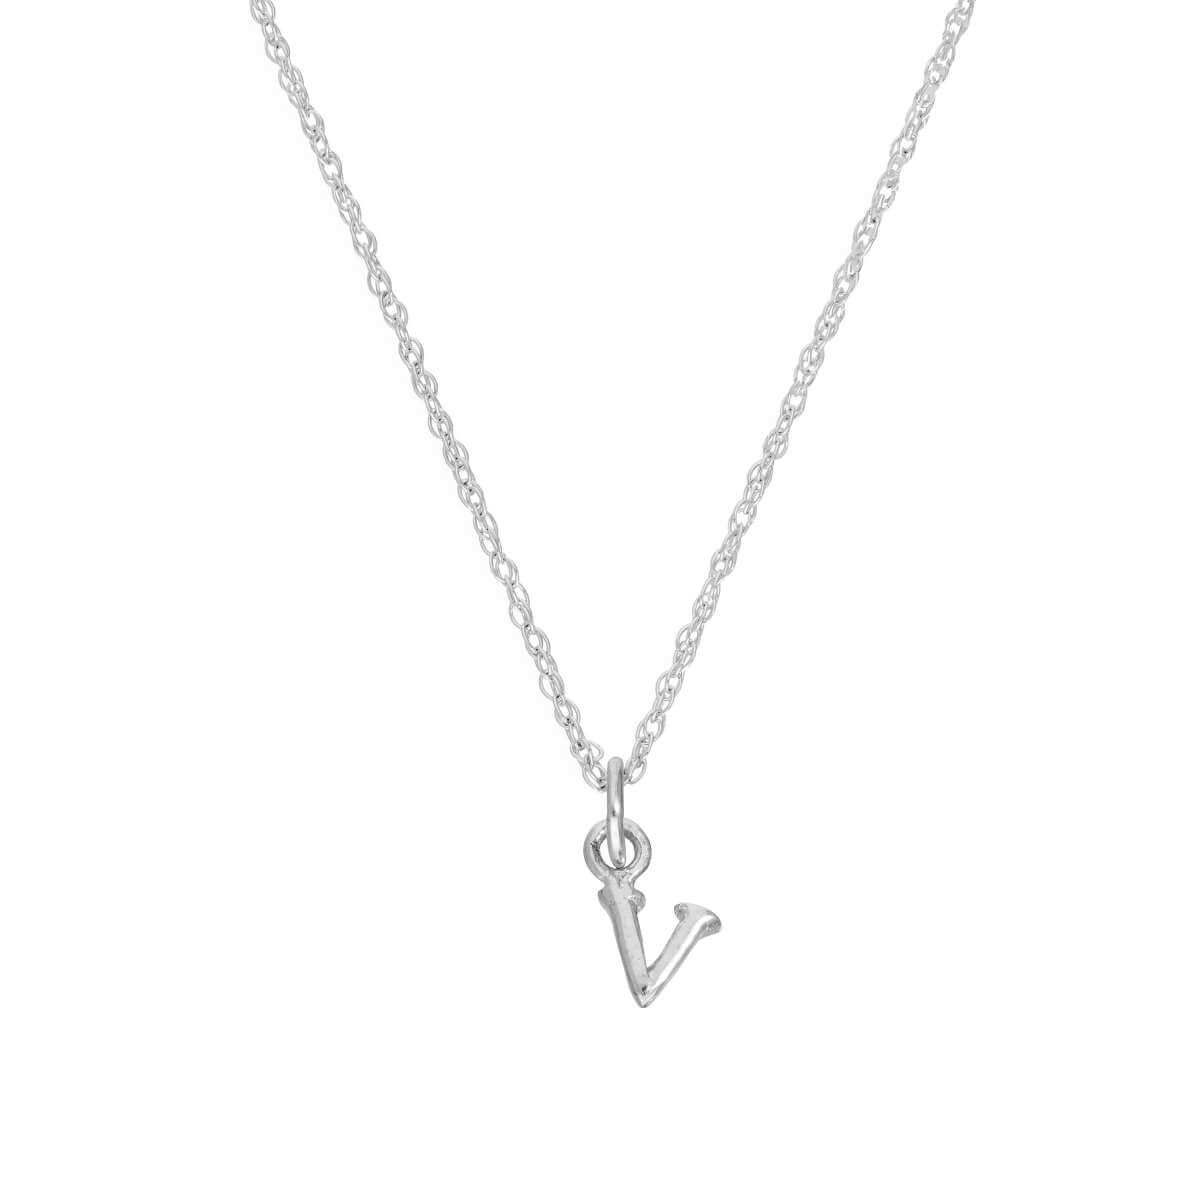 Tiny Sterling Silver Alphabet Letter V Pendant Necklace 14 - 22 Inches